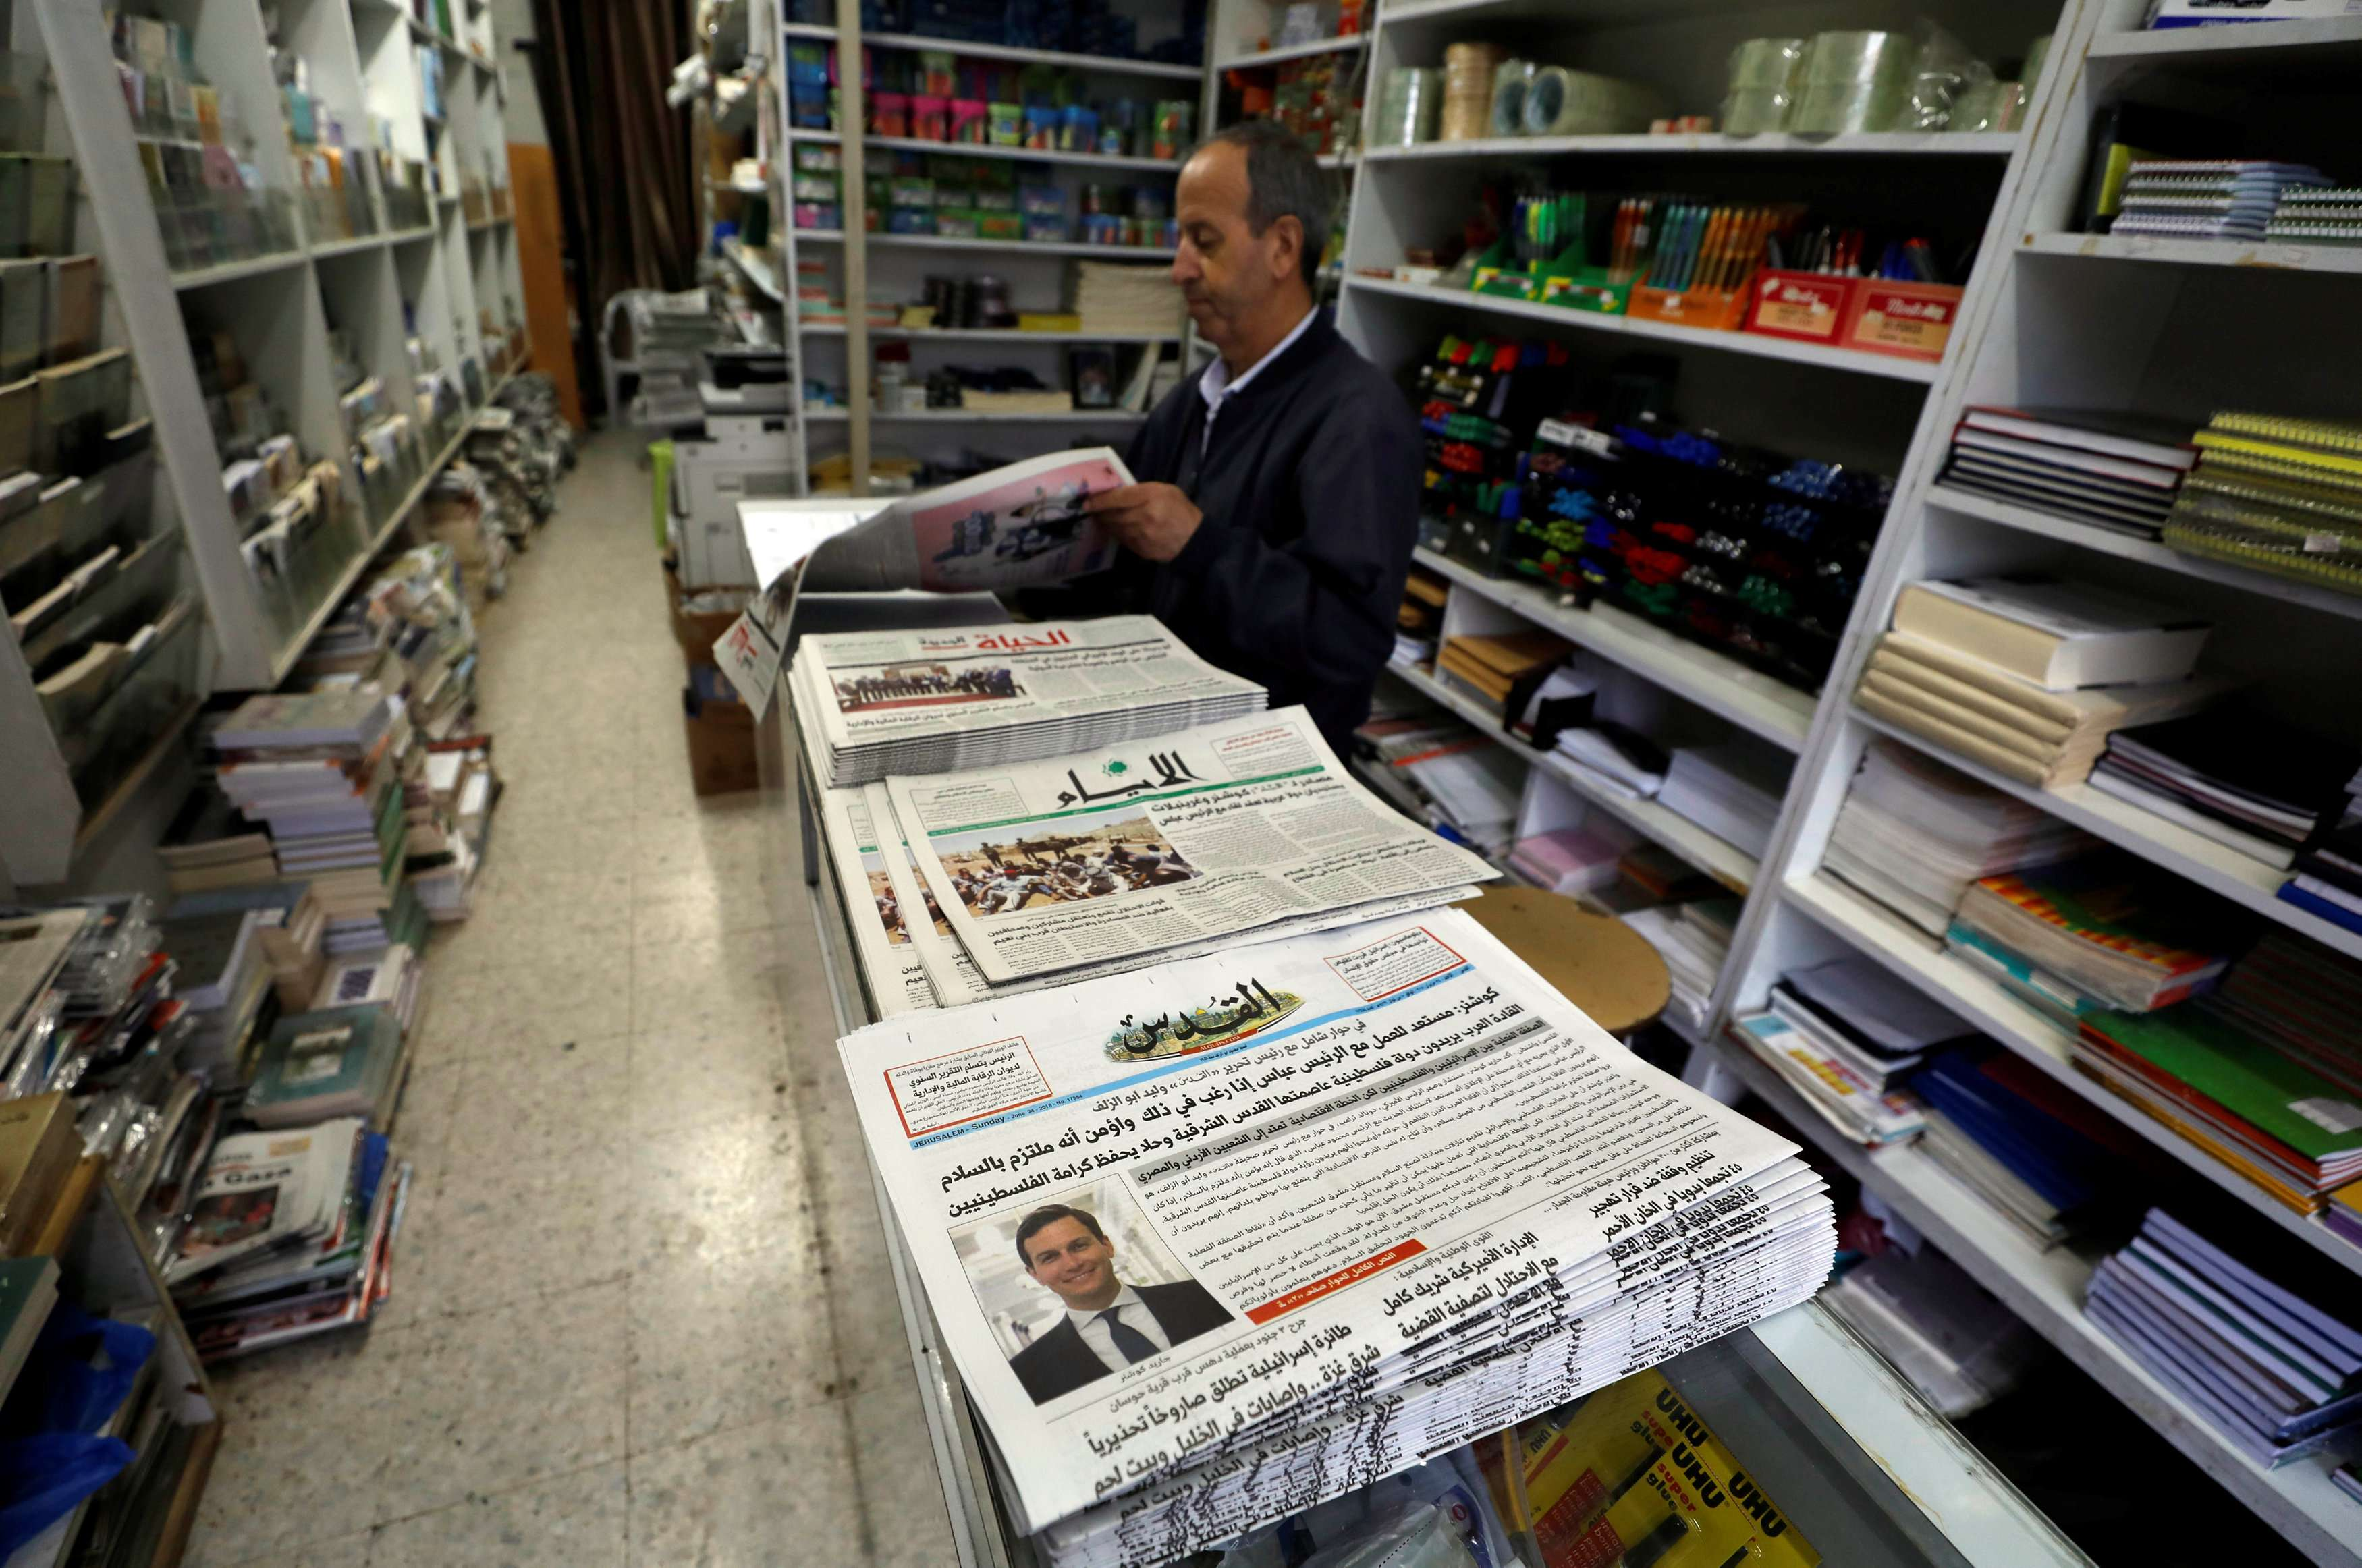 Long wait. Copies of the Palestinian newspaper Al-Quds that published an interview with US President Donald Trump's senior adviser Jared Kushner on display for sale in Ramallah, on June 24. (Reuters)